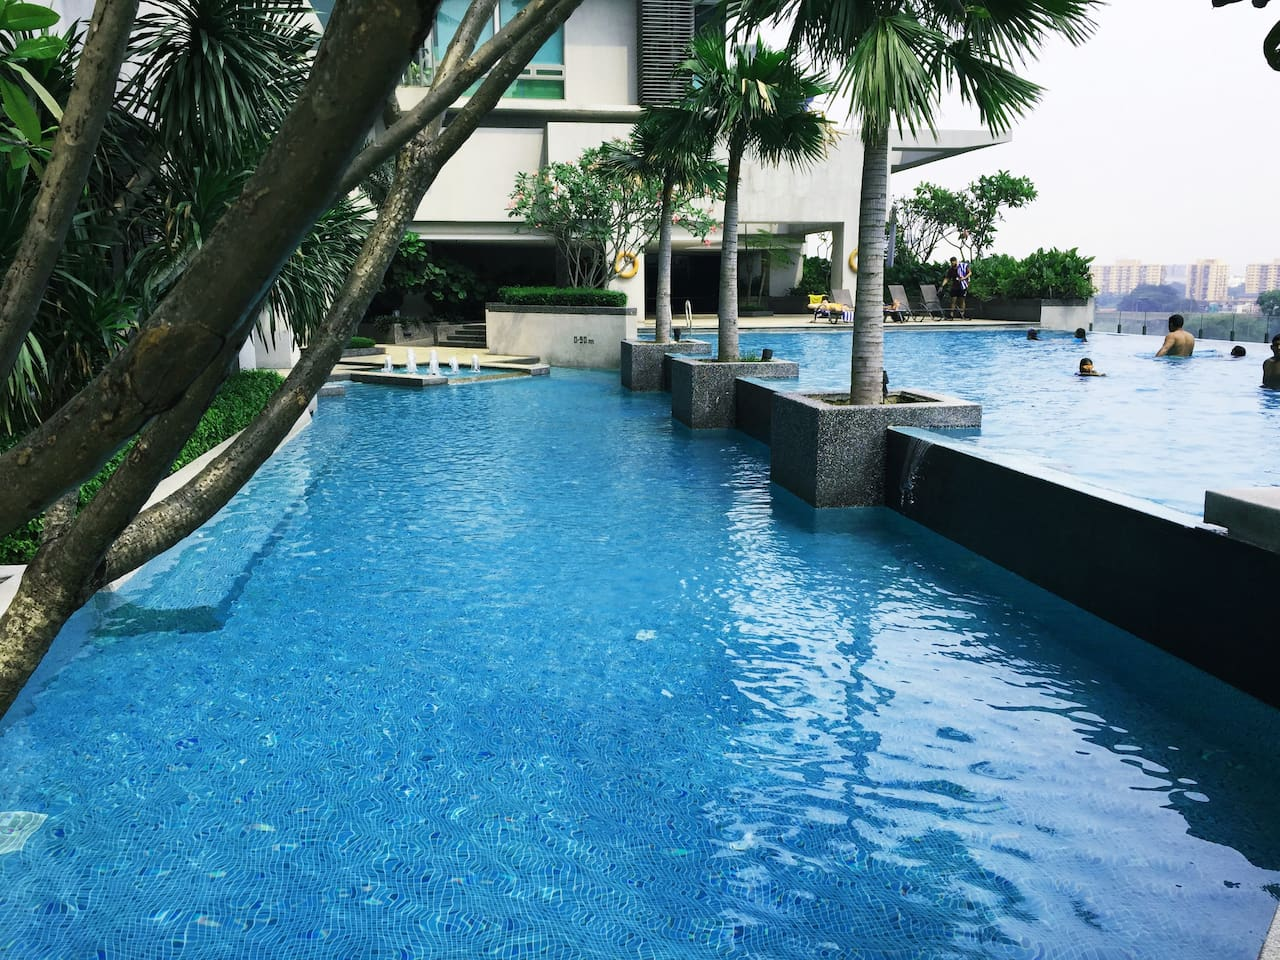 A beautiful pool area which really gets you in the vacation mood.